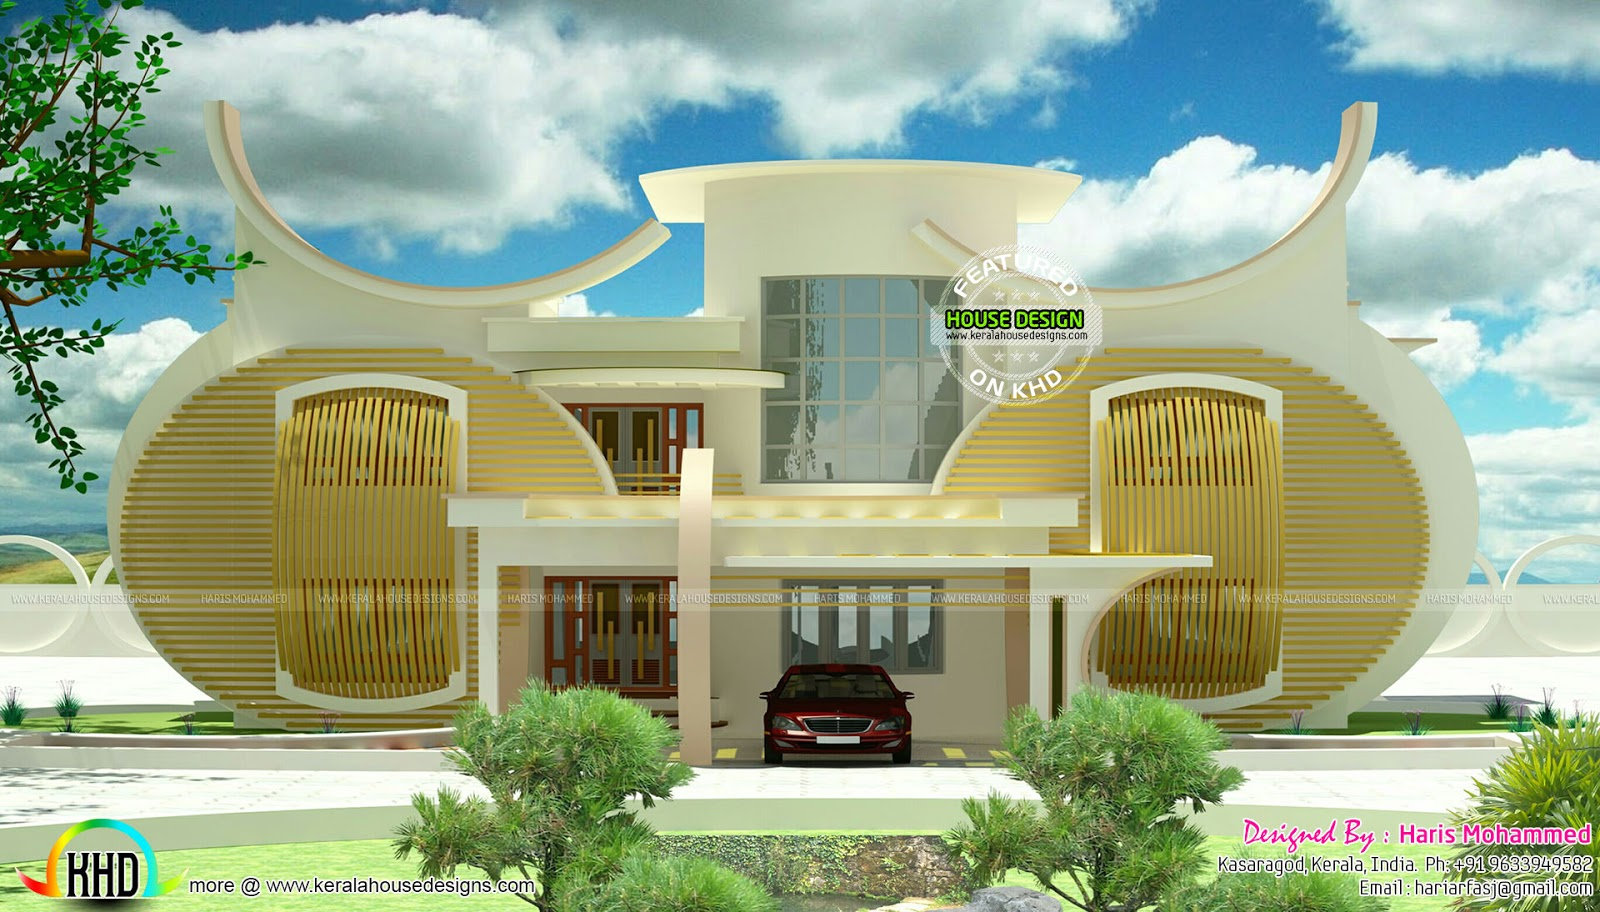 Strange Circular Home Design Kerala Home Design And